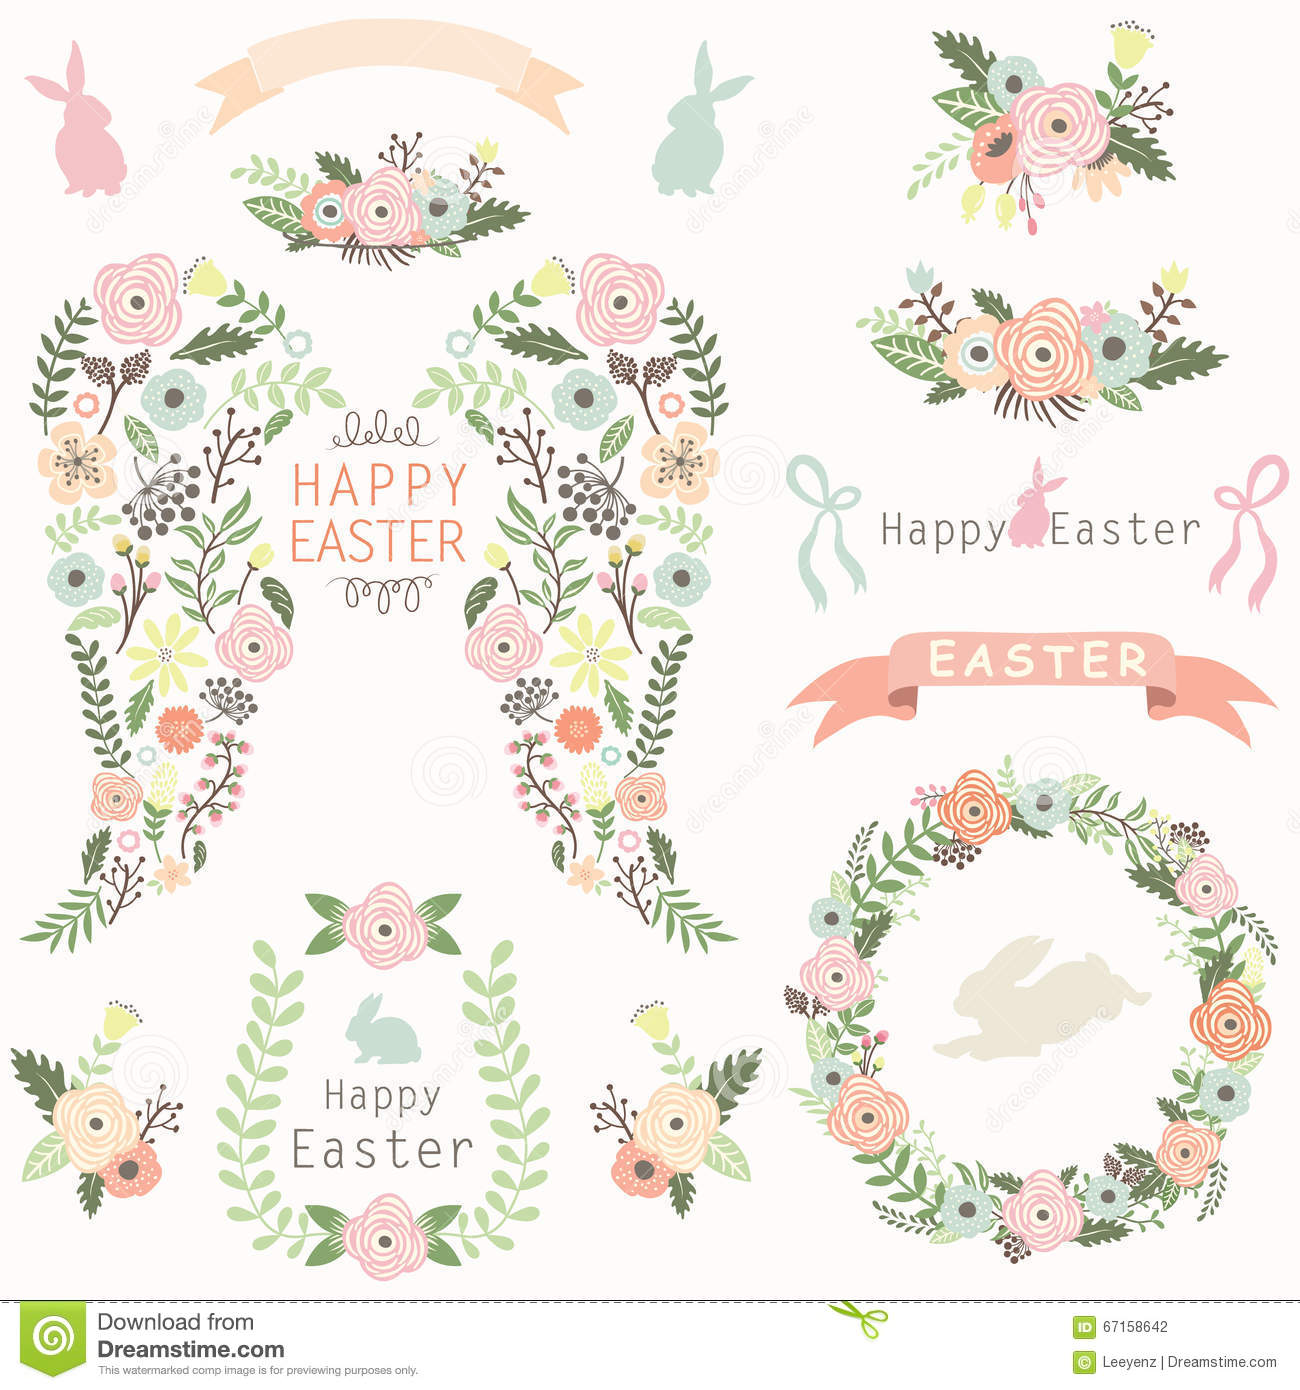 Angel Wing Easter Elements floral